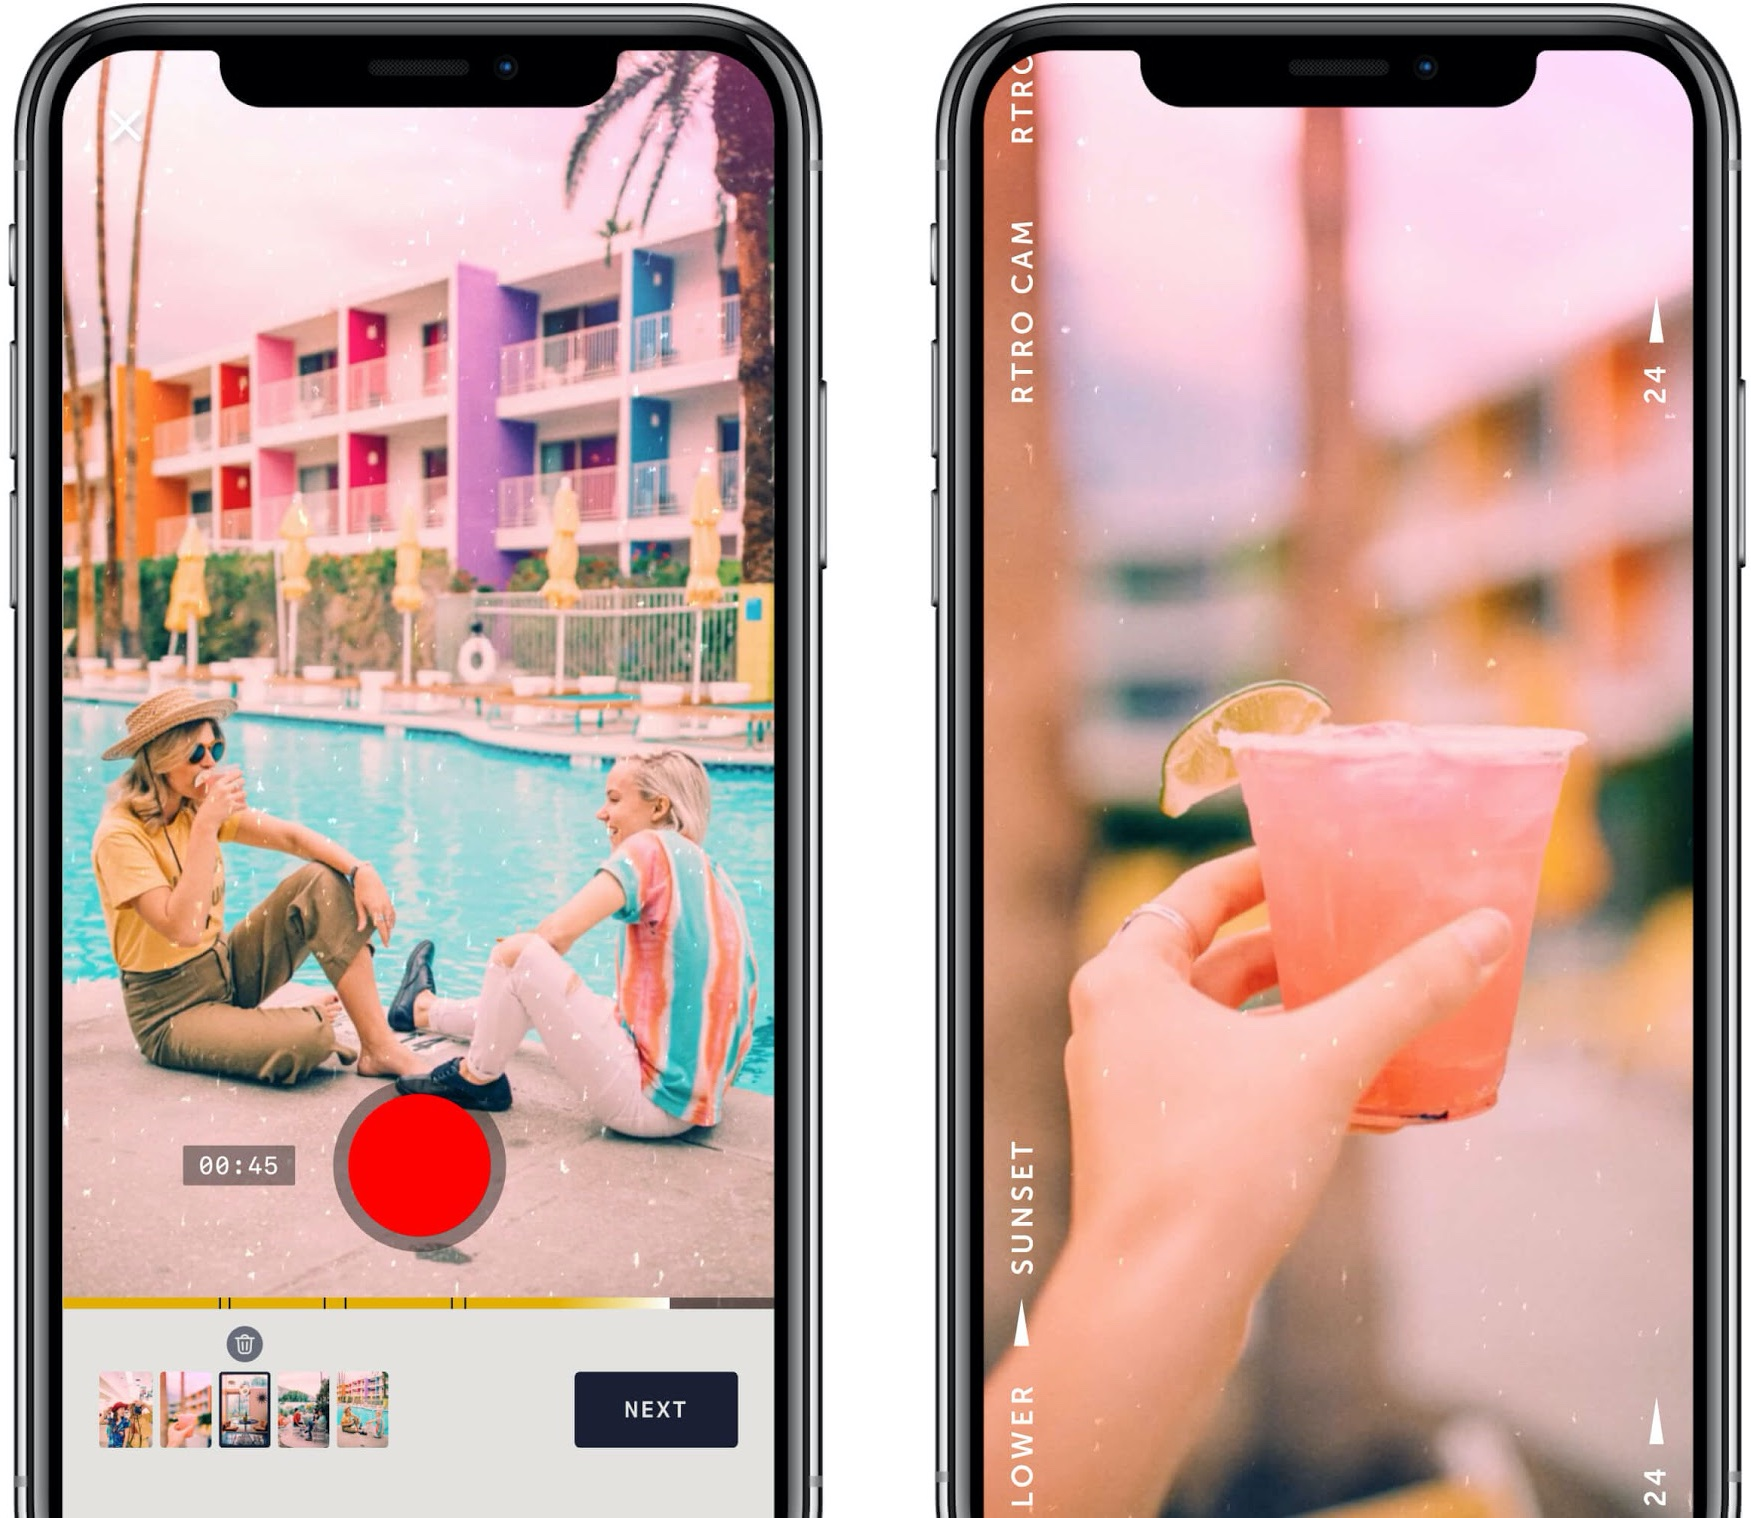 RTRO Camera is a New Video Editing App From the Makers of Moment Lenses